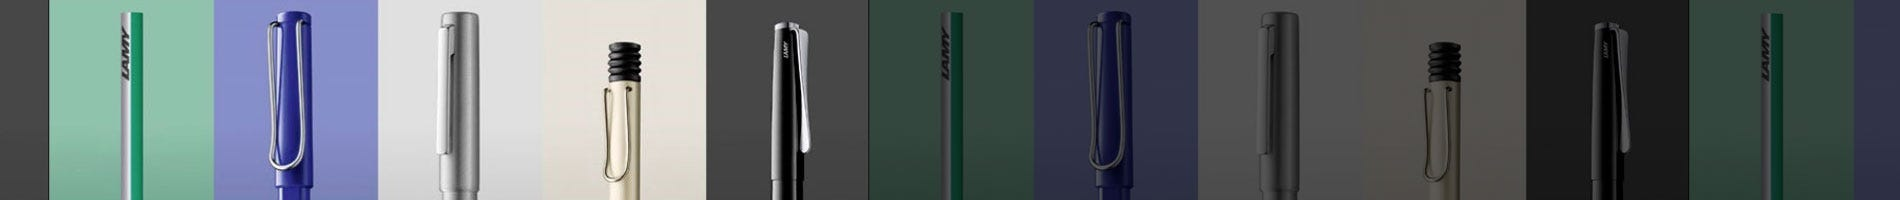 Lamy Multifunction